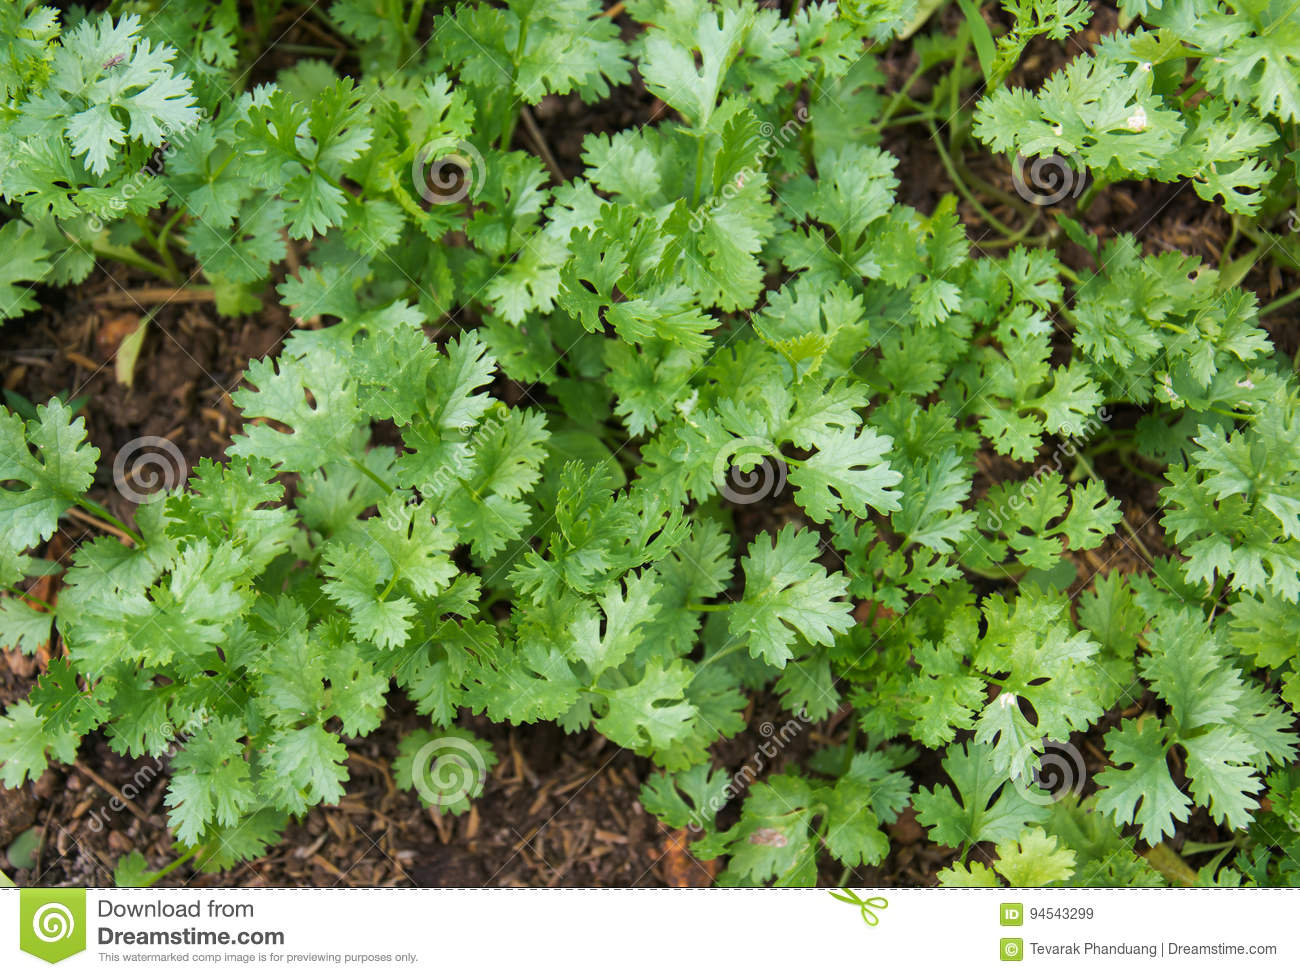 health benefits of coriander. coriander is loaded with